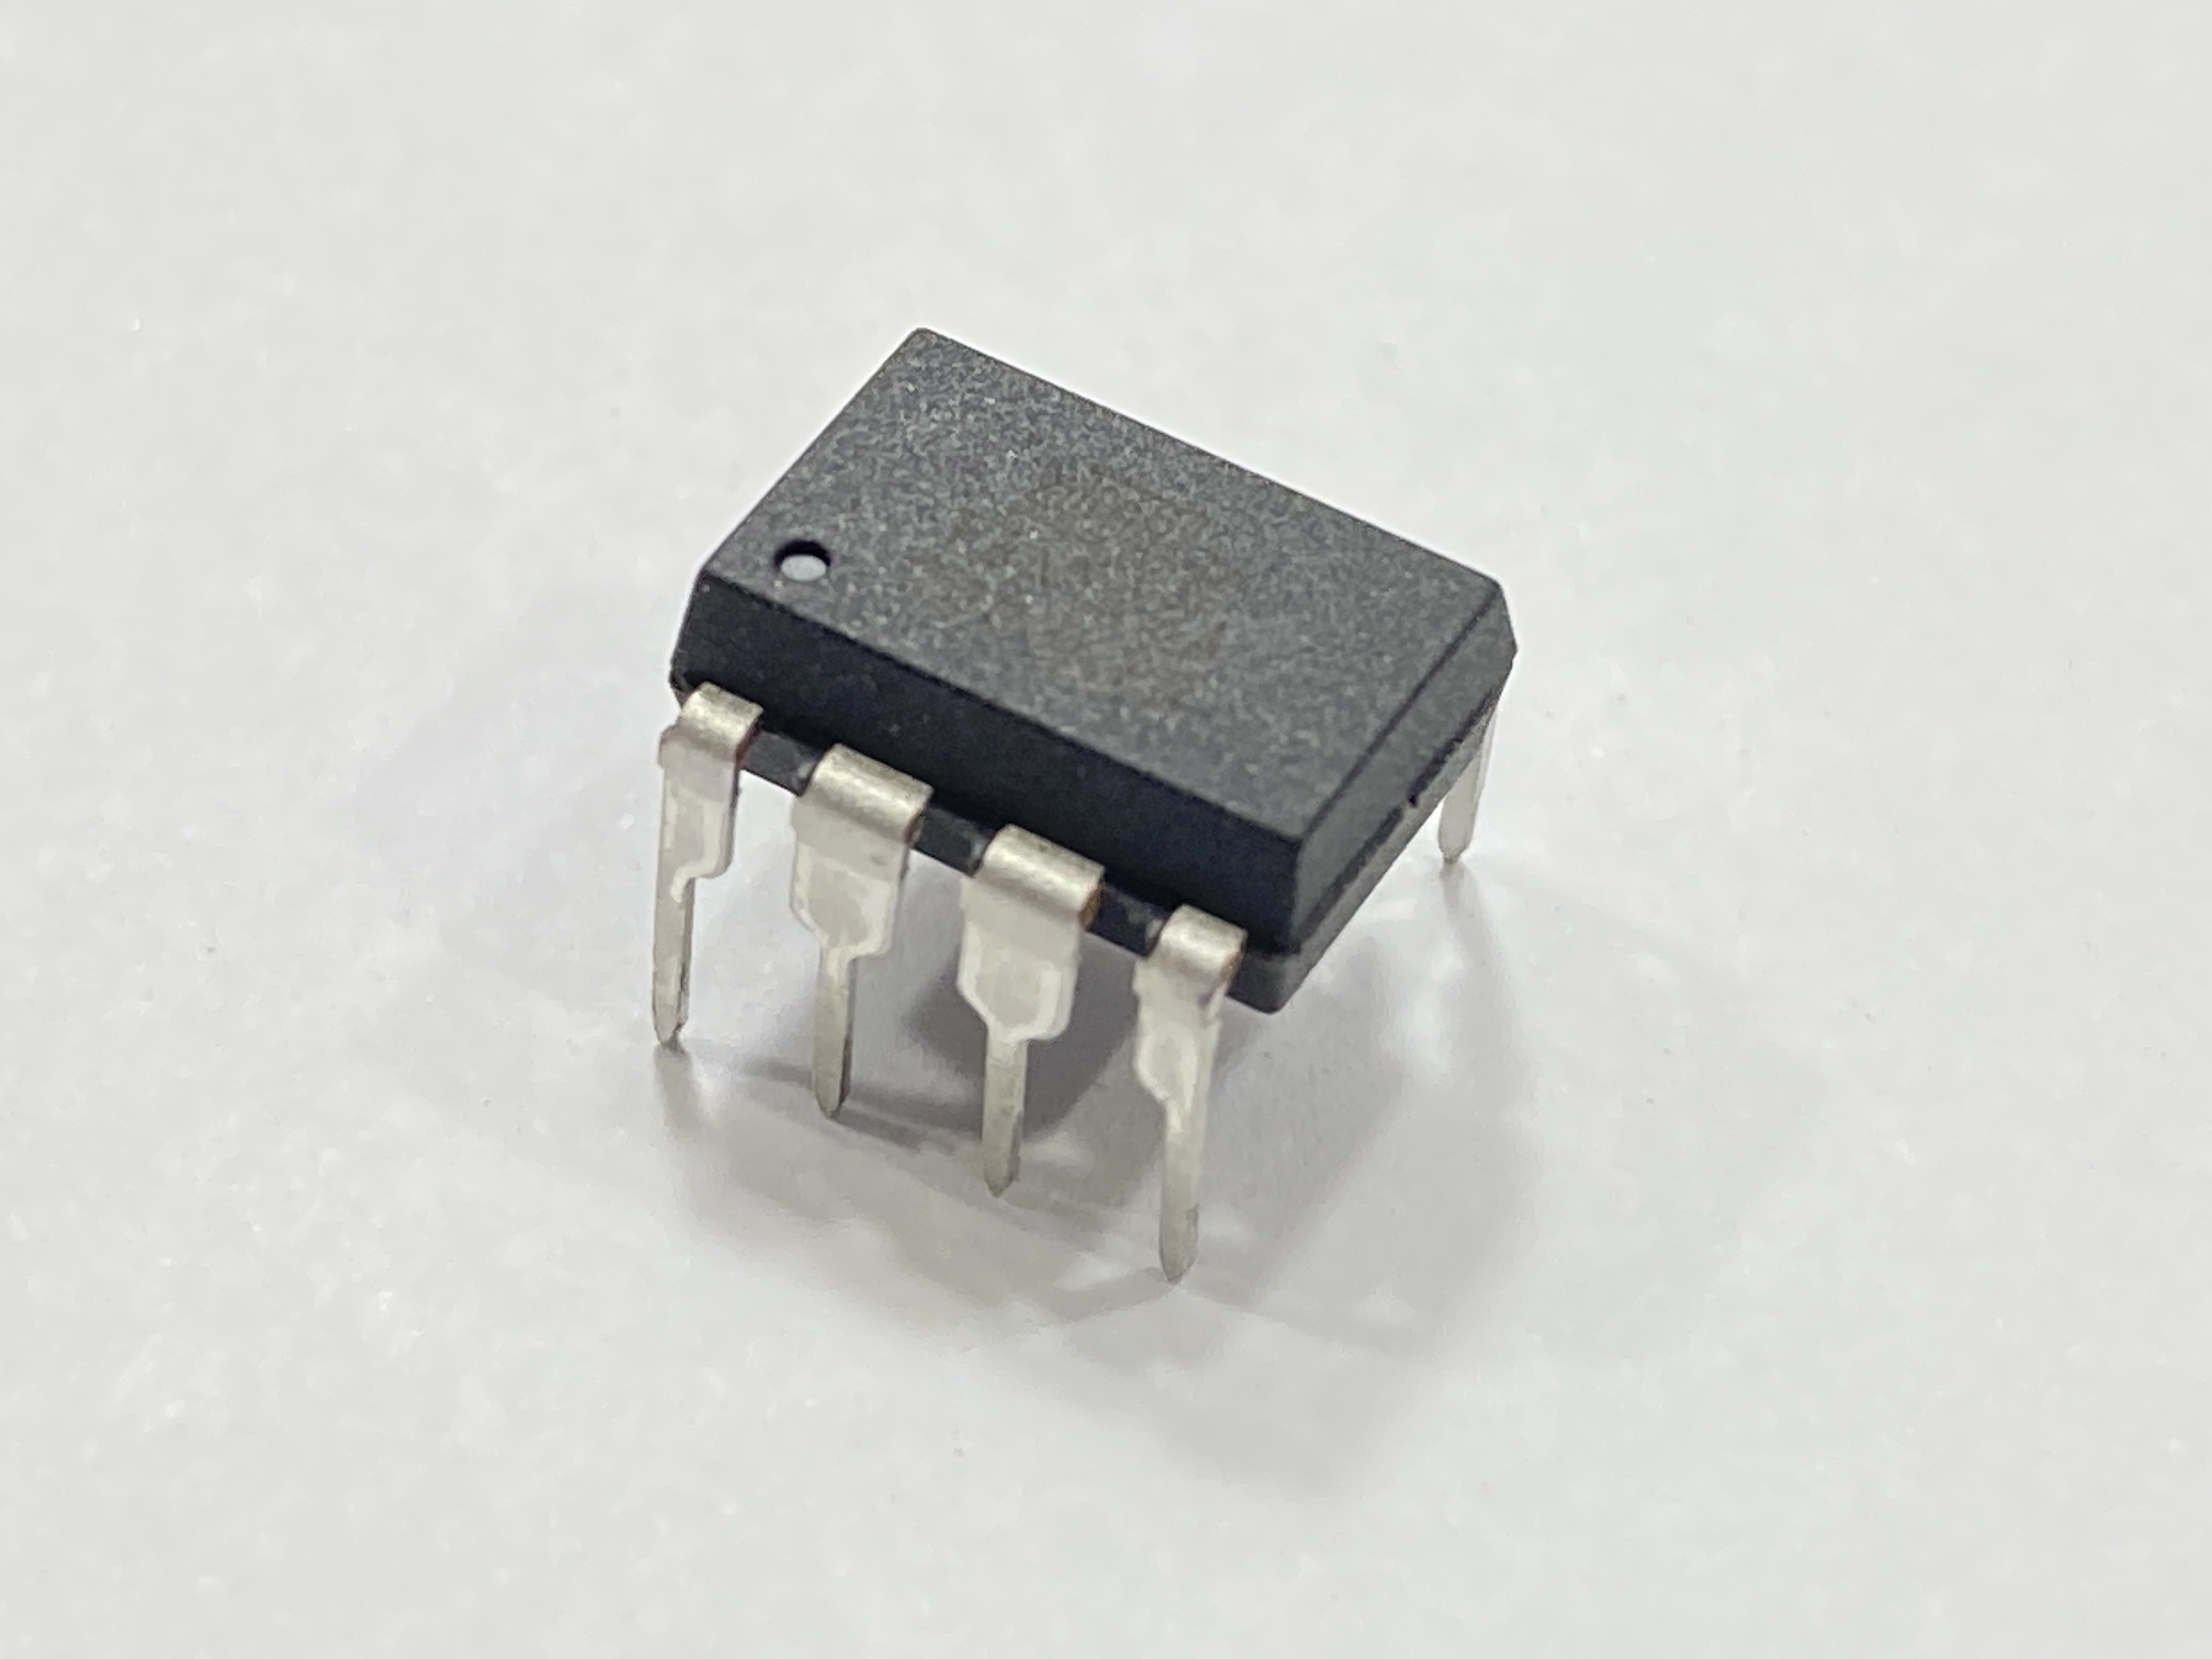 Super small and cheap Arduino with an ATtiny13a